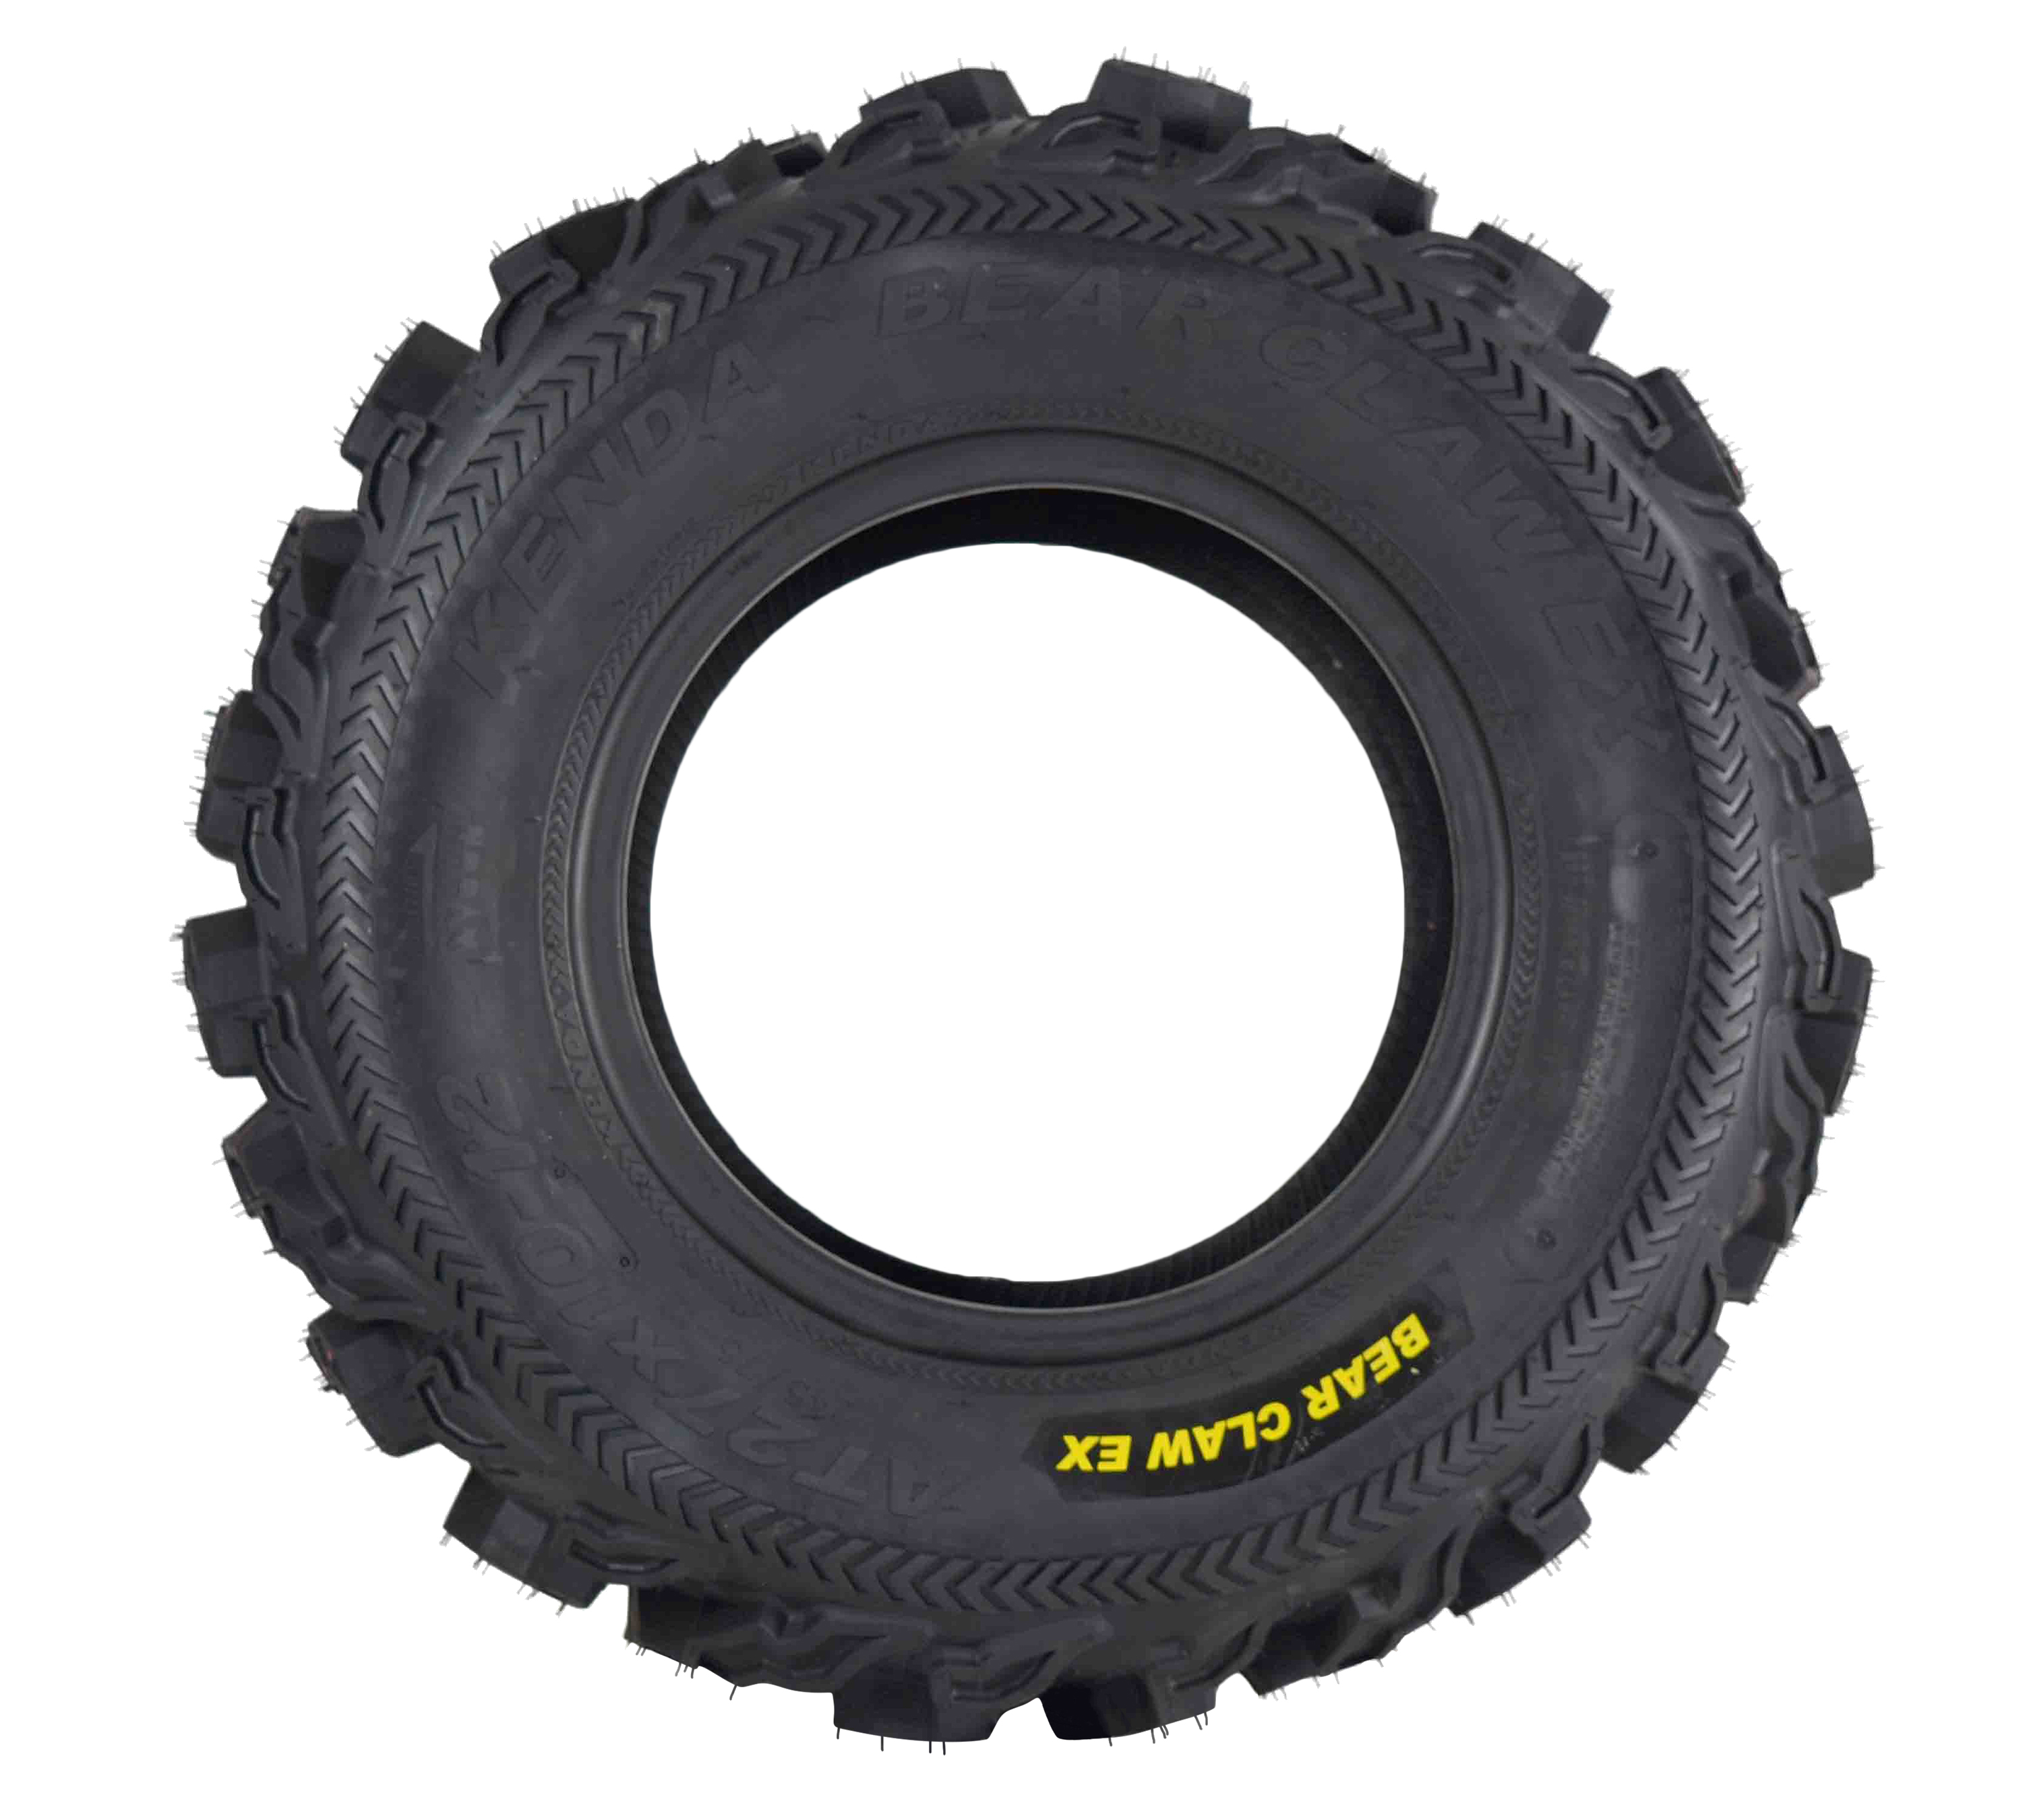 Kenda-Bear-Claw-EX-27x10-12-Front-ATV-6-PLY-Tire-Bearclaw-27x10x12-Single-Tire-image-2